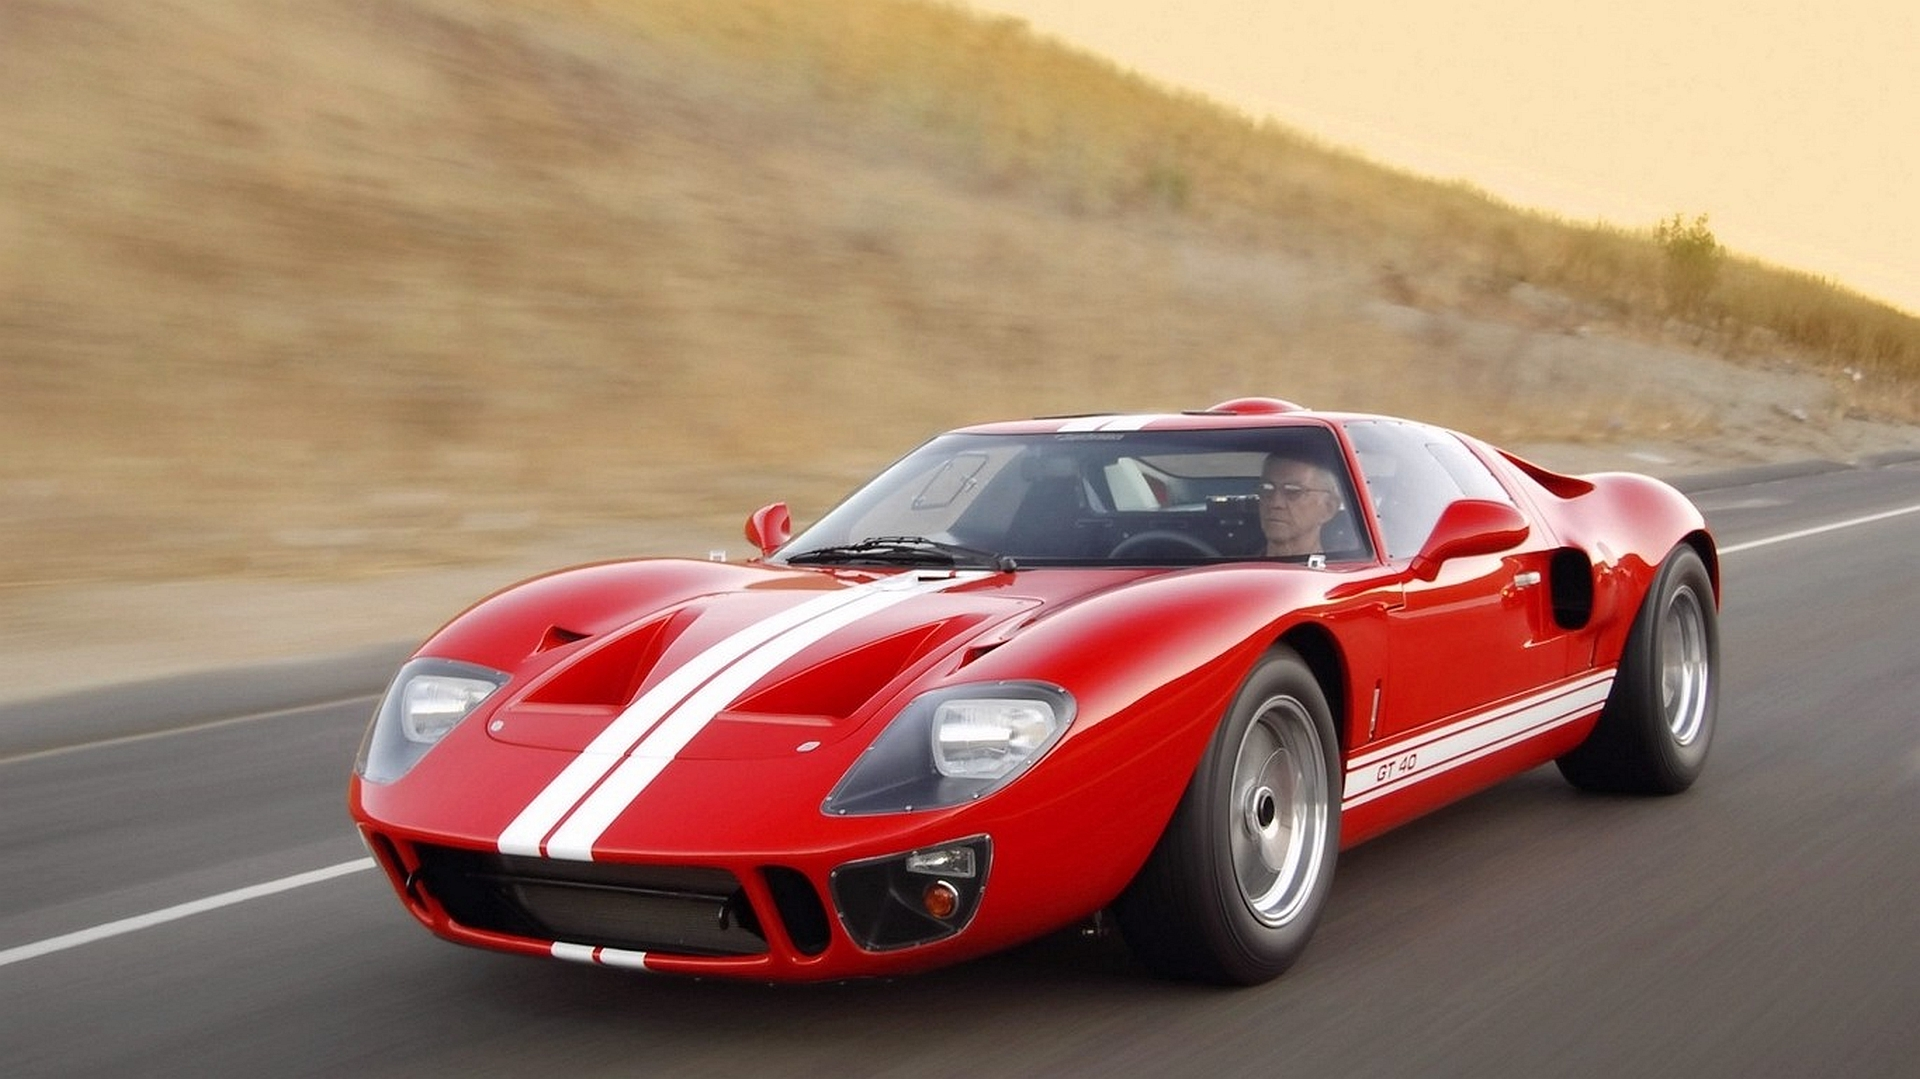 ford gt40 wallpaper and background image 1920x1079 id. Black Bedroom Furniture Sets. Home Design Ideas